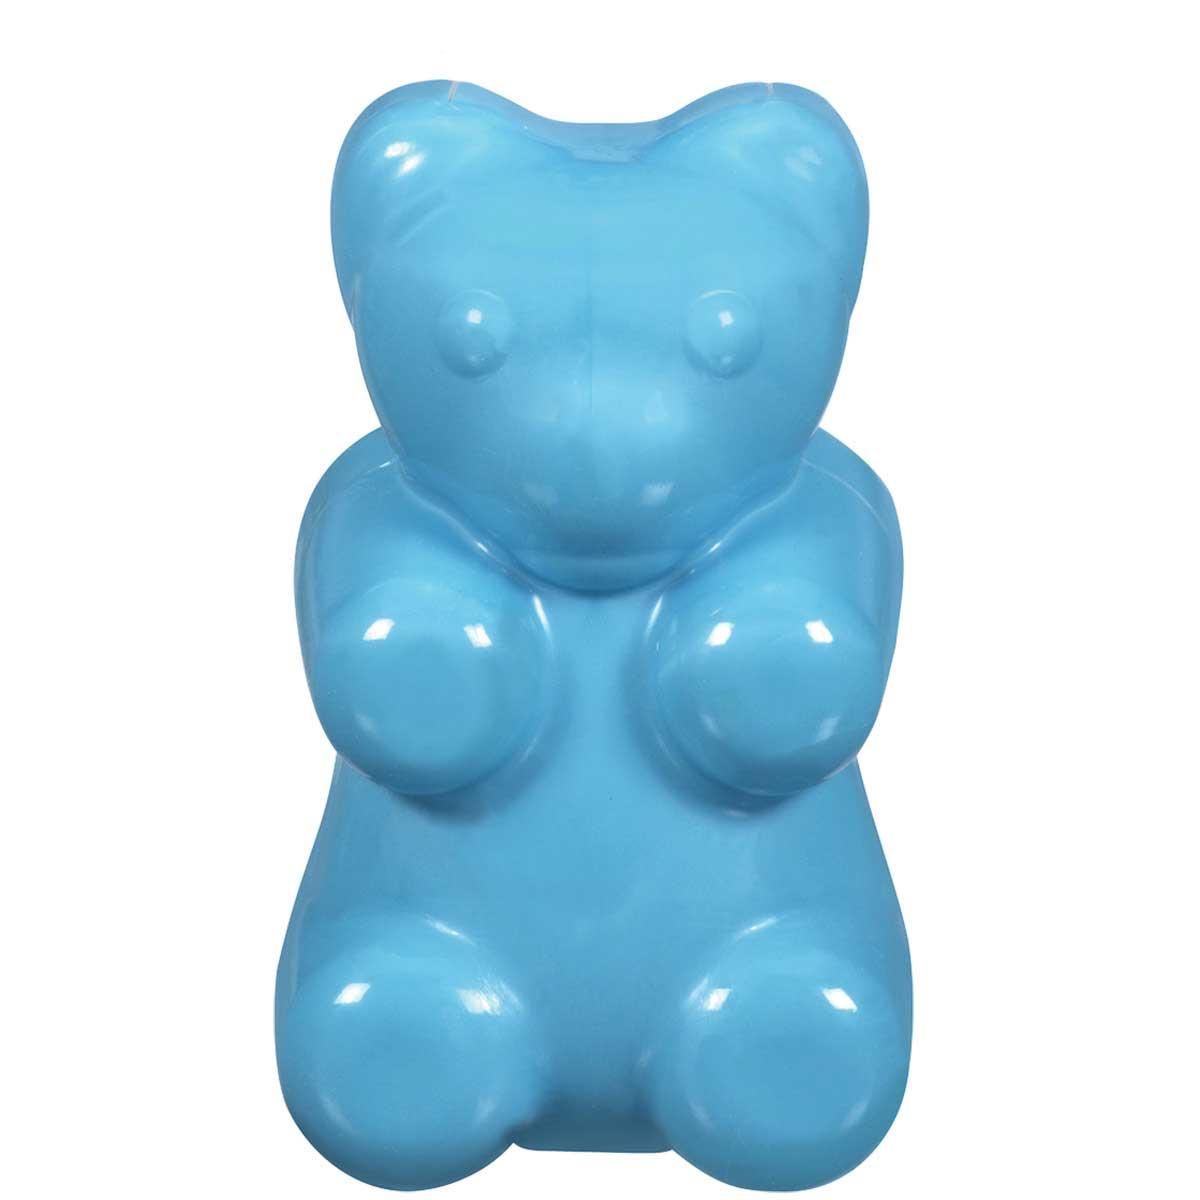 "JW Megalast Megabear Medium 3.5"" for Dogs"